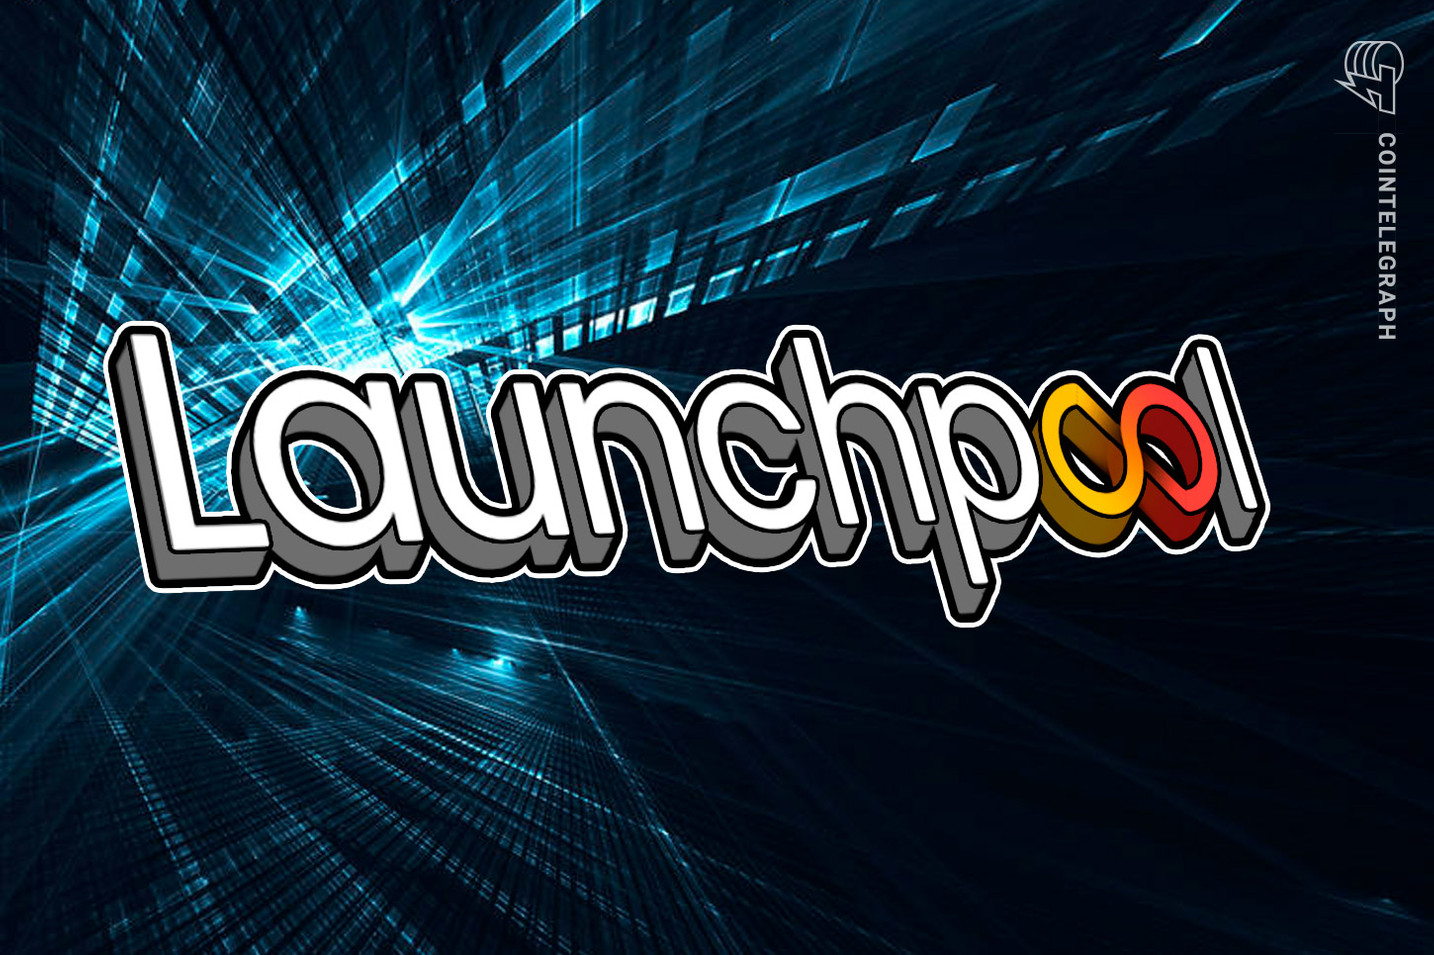 Launchpool enables egalitarian investments for all stakeholders